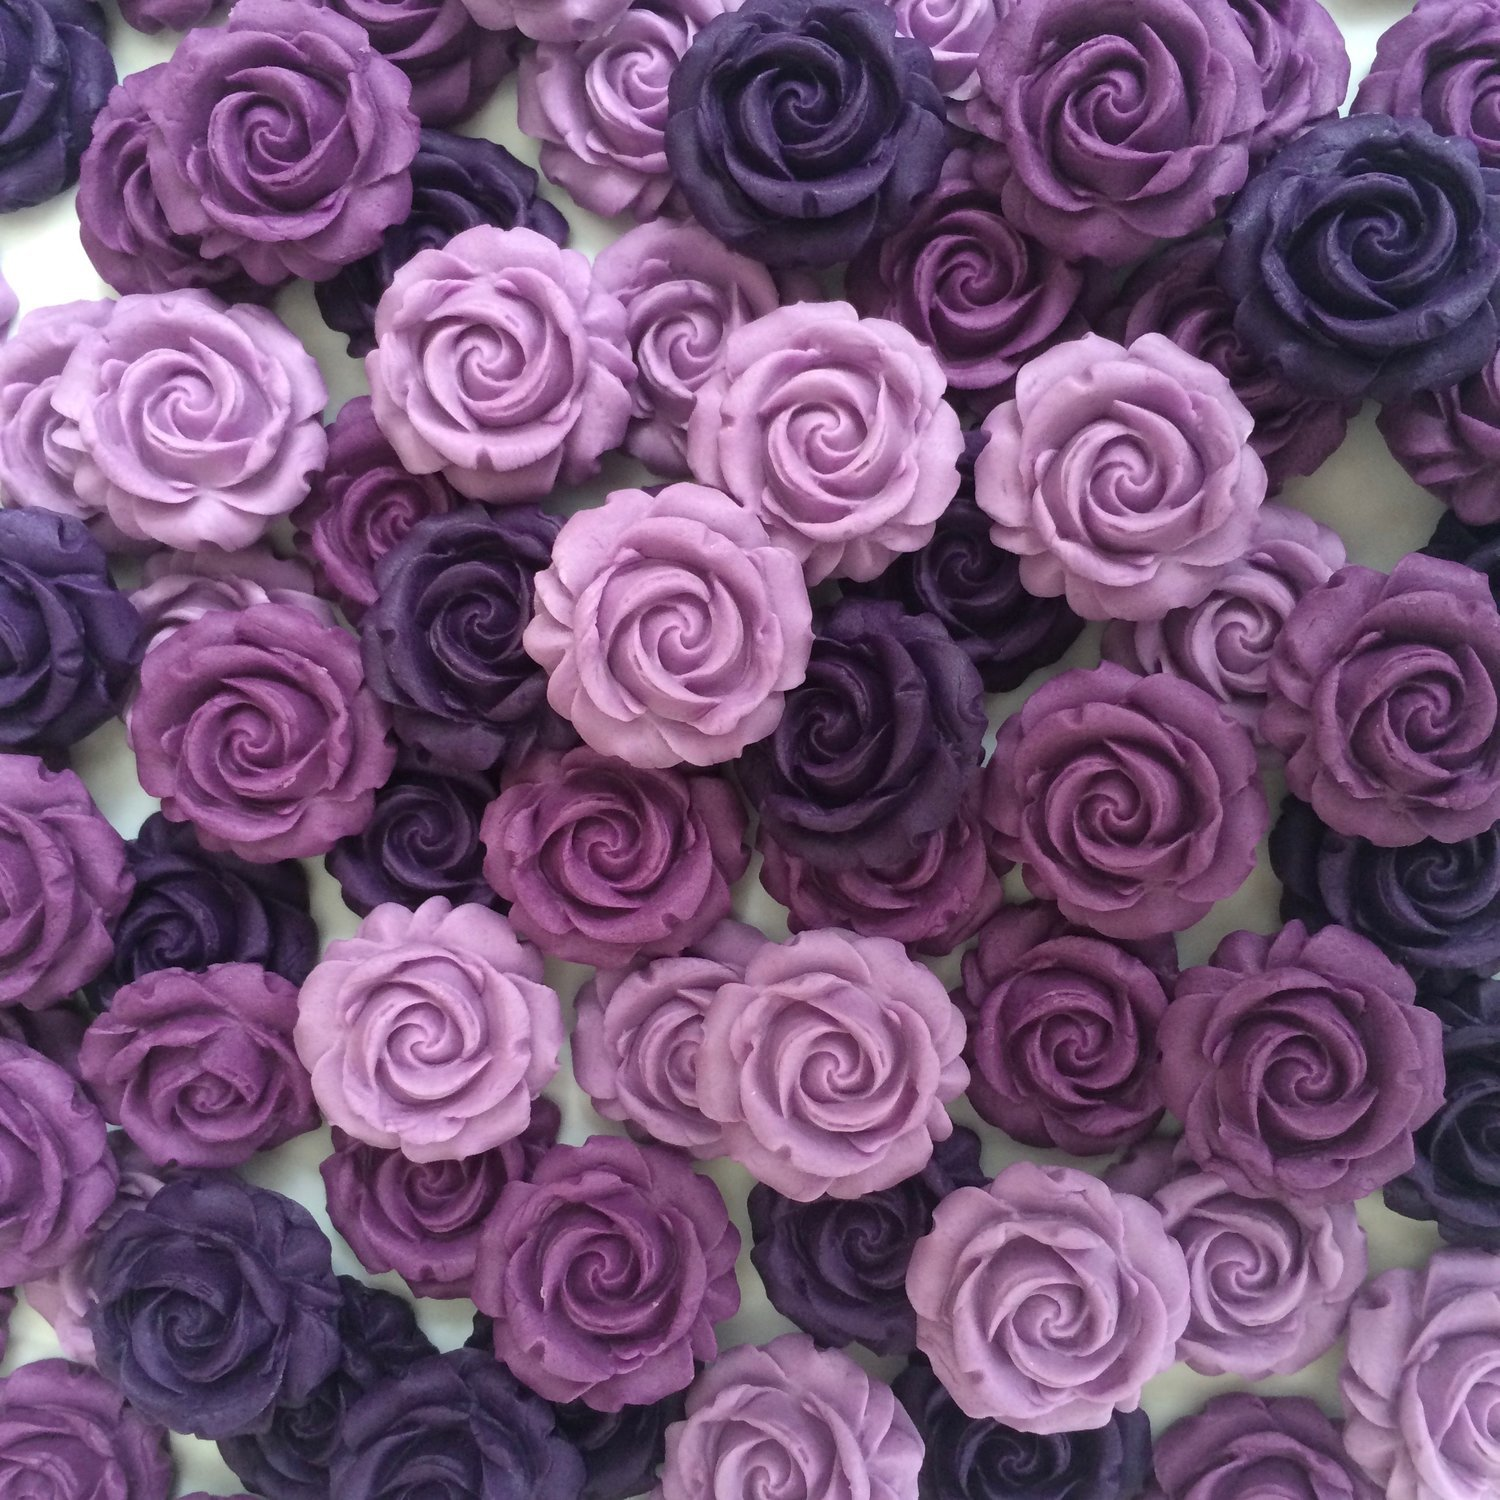 Mixed Purple Roses